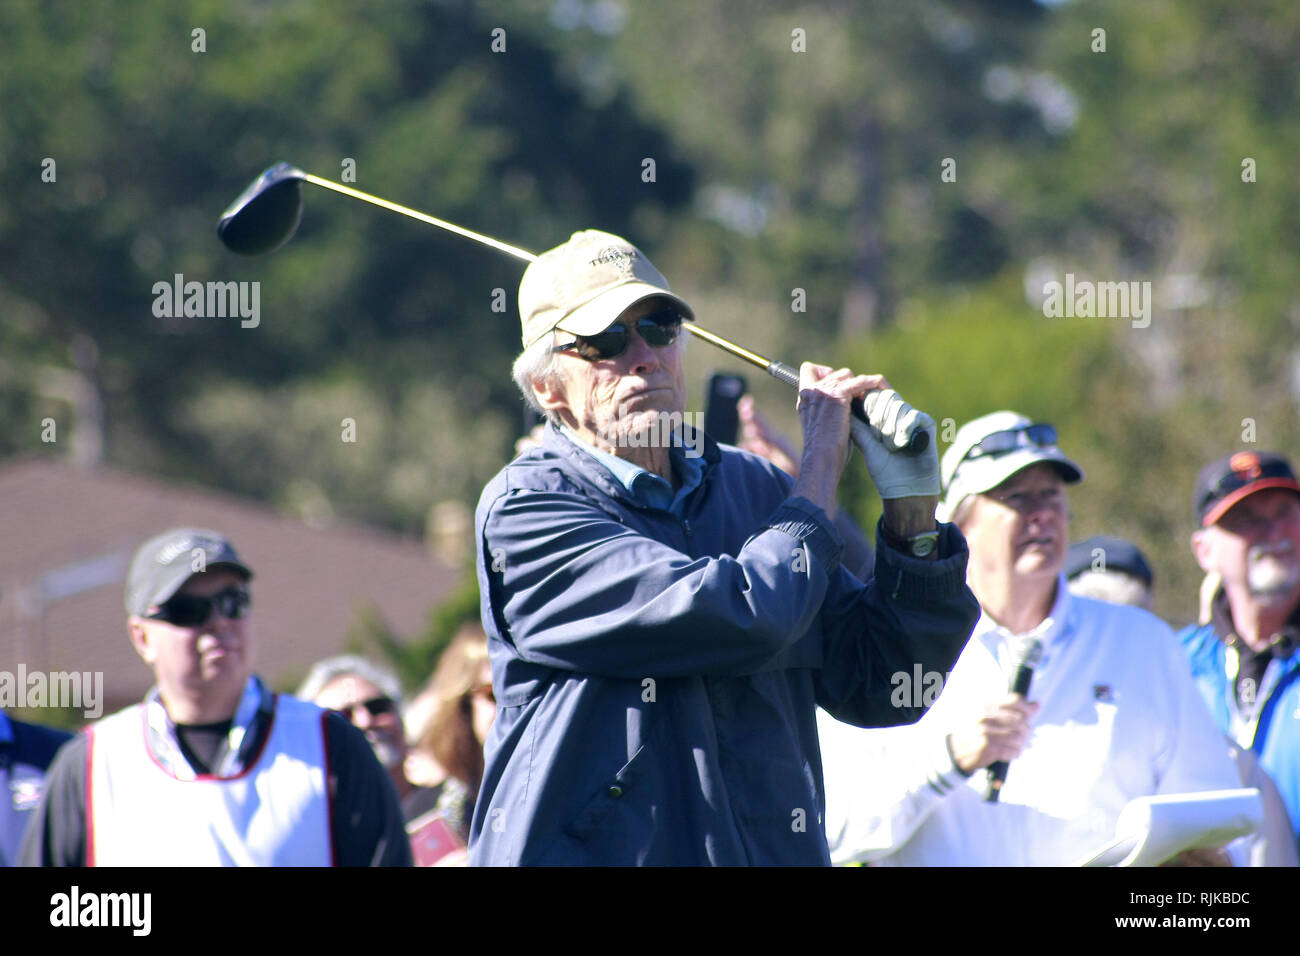 "Pebble Beach Beach Golf Links, CA, EE.UU. 6 Feb, 2019. Clint Eastwood aterriza el primer 3M en el Celebrity Challenge (dos equipos ""gestionada"" por Clint Eastwood & Bill Murray) antes de iniciar el Pro-Am de AT&T en Pebble Beach Golf Links: Crédito Motofoto/Alamy Live News Imagen De Stock"